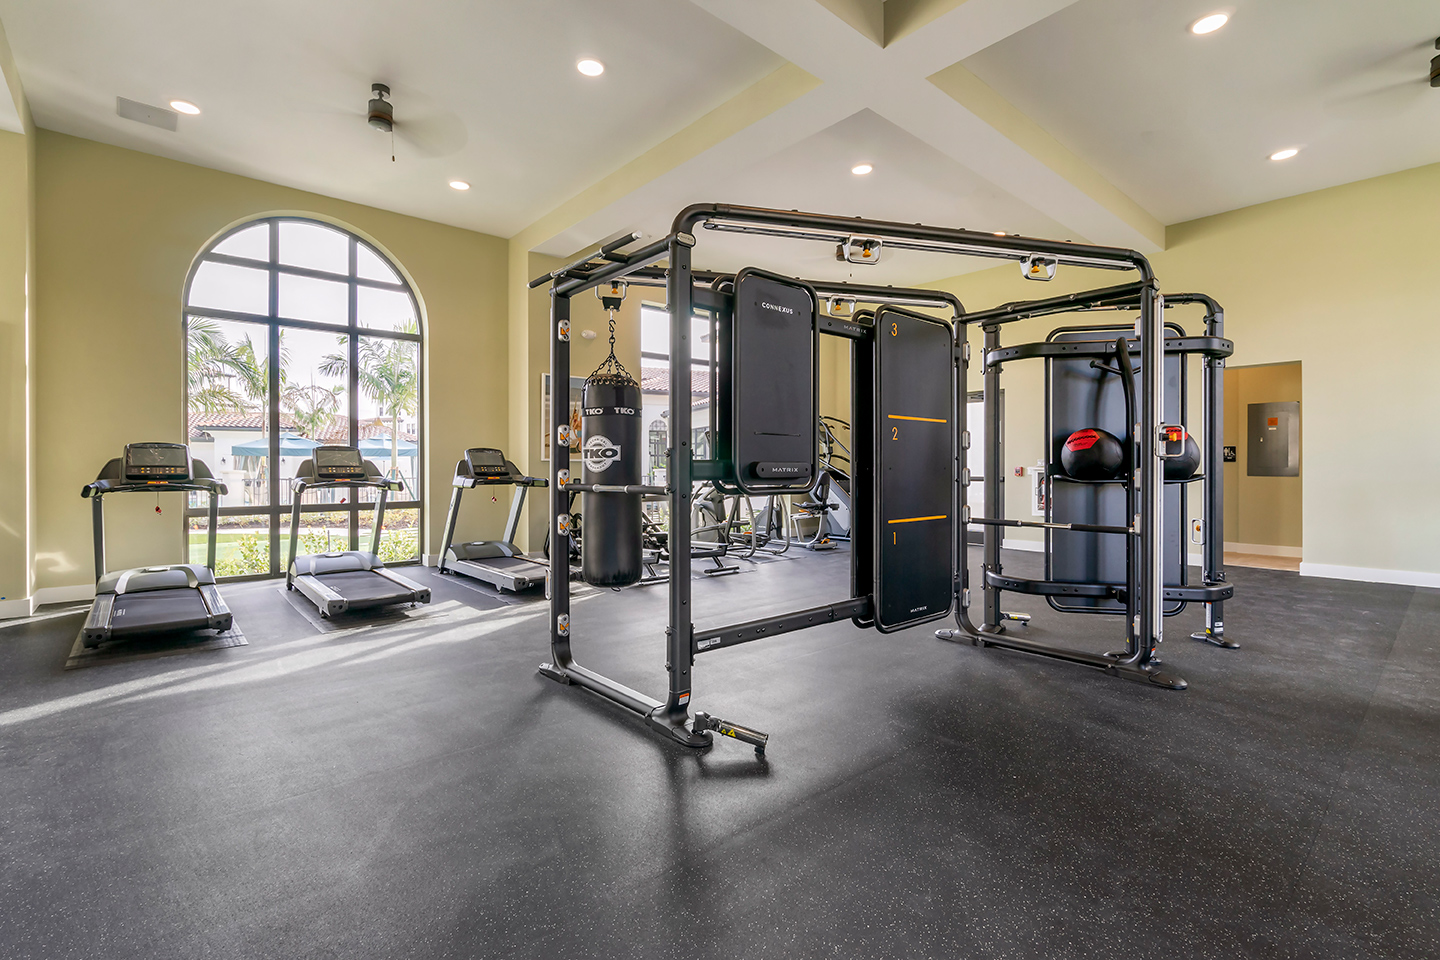 Community fitness center with cardio machines and strength training equipment